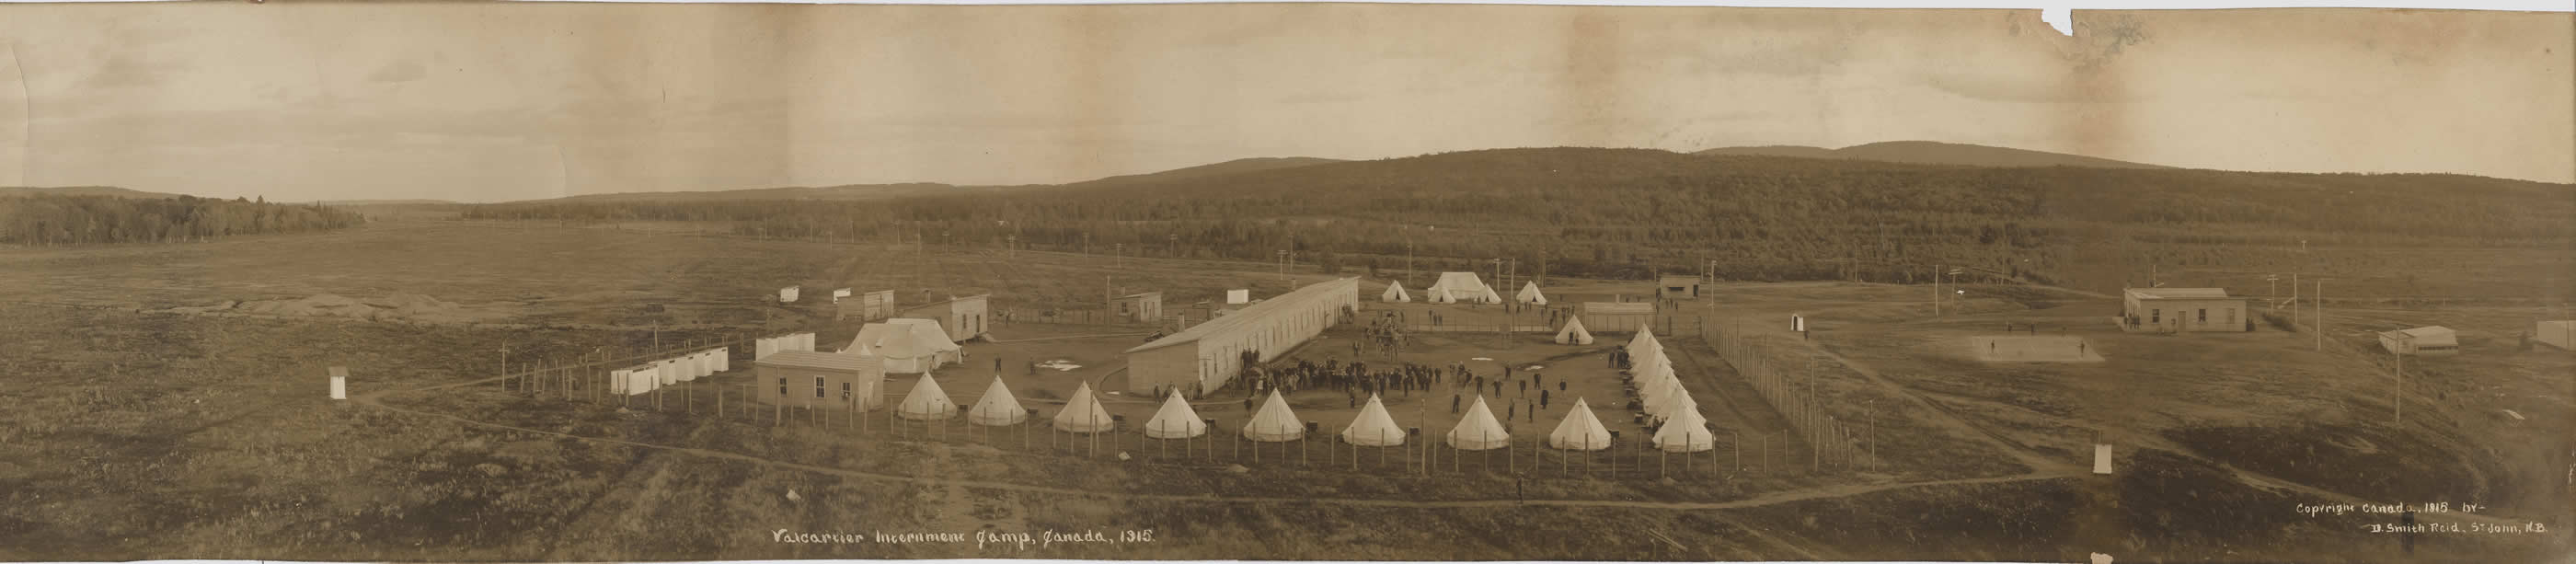 Valcartier Internment Camp